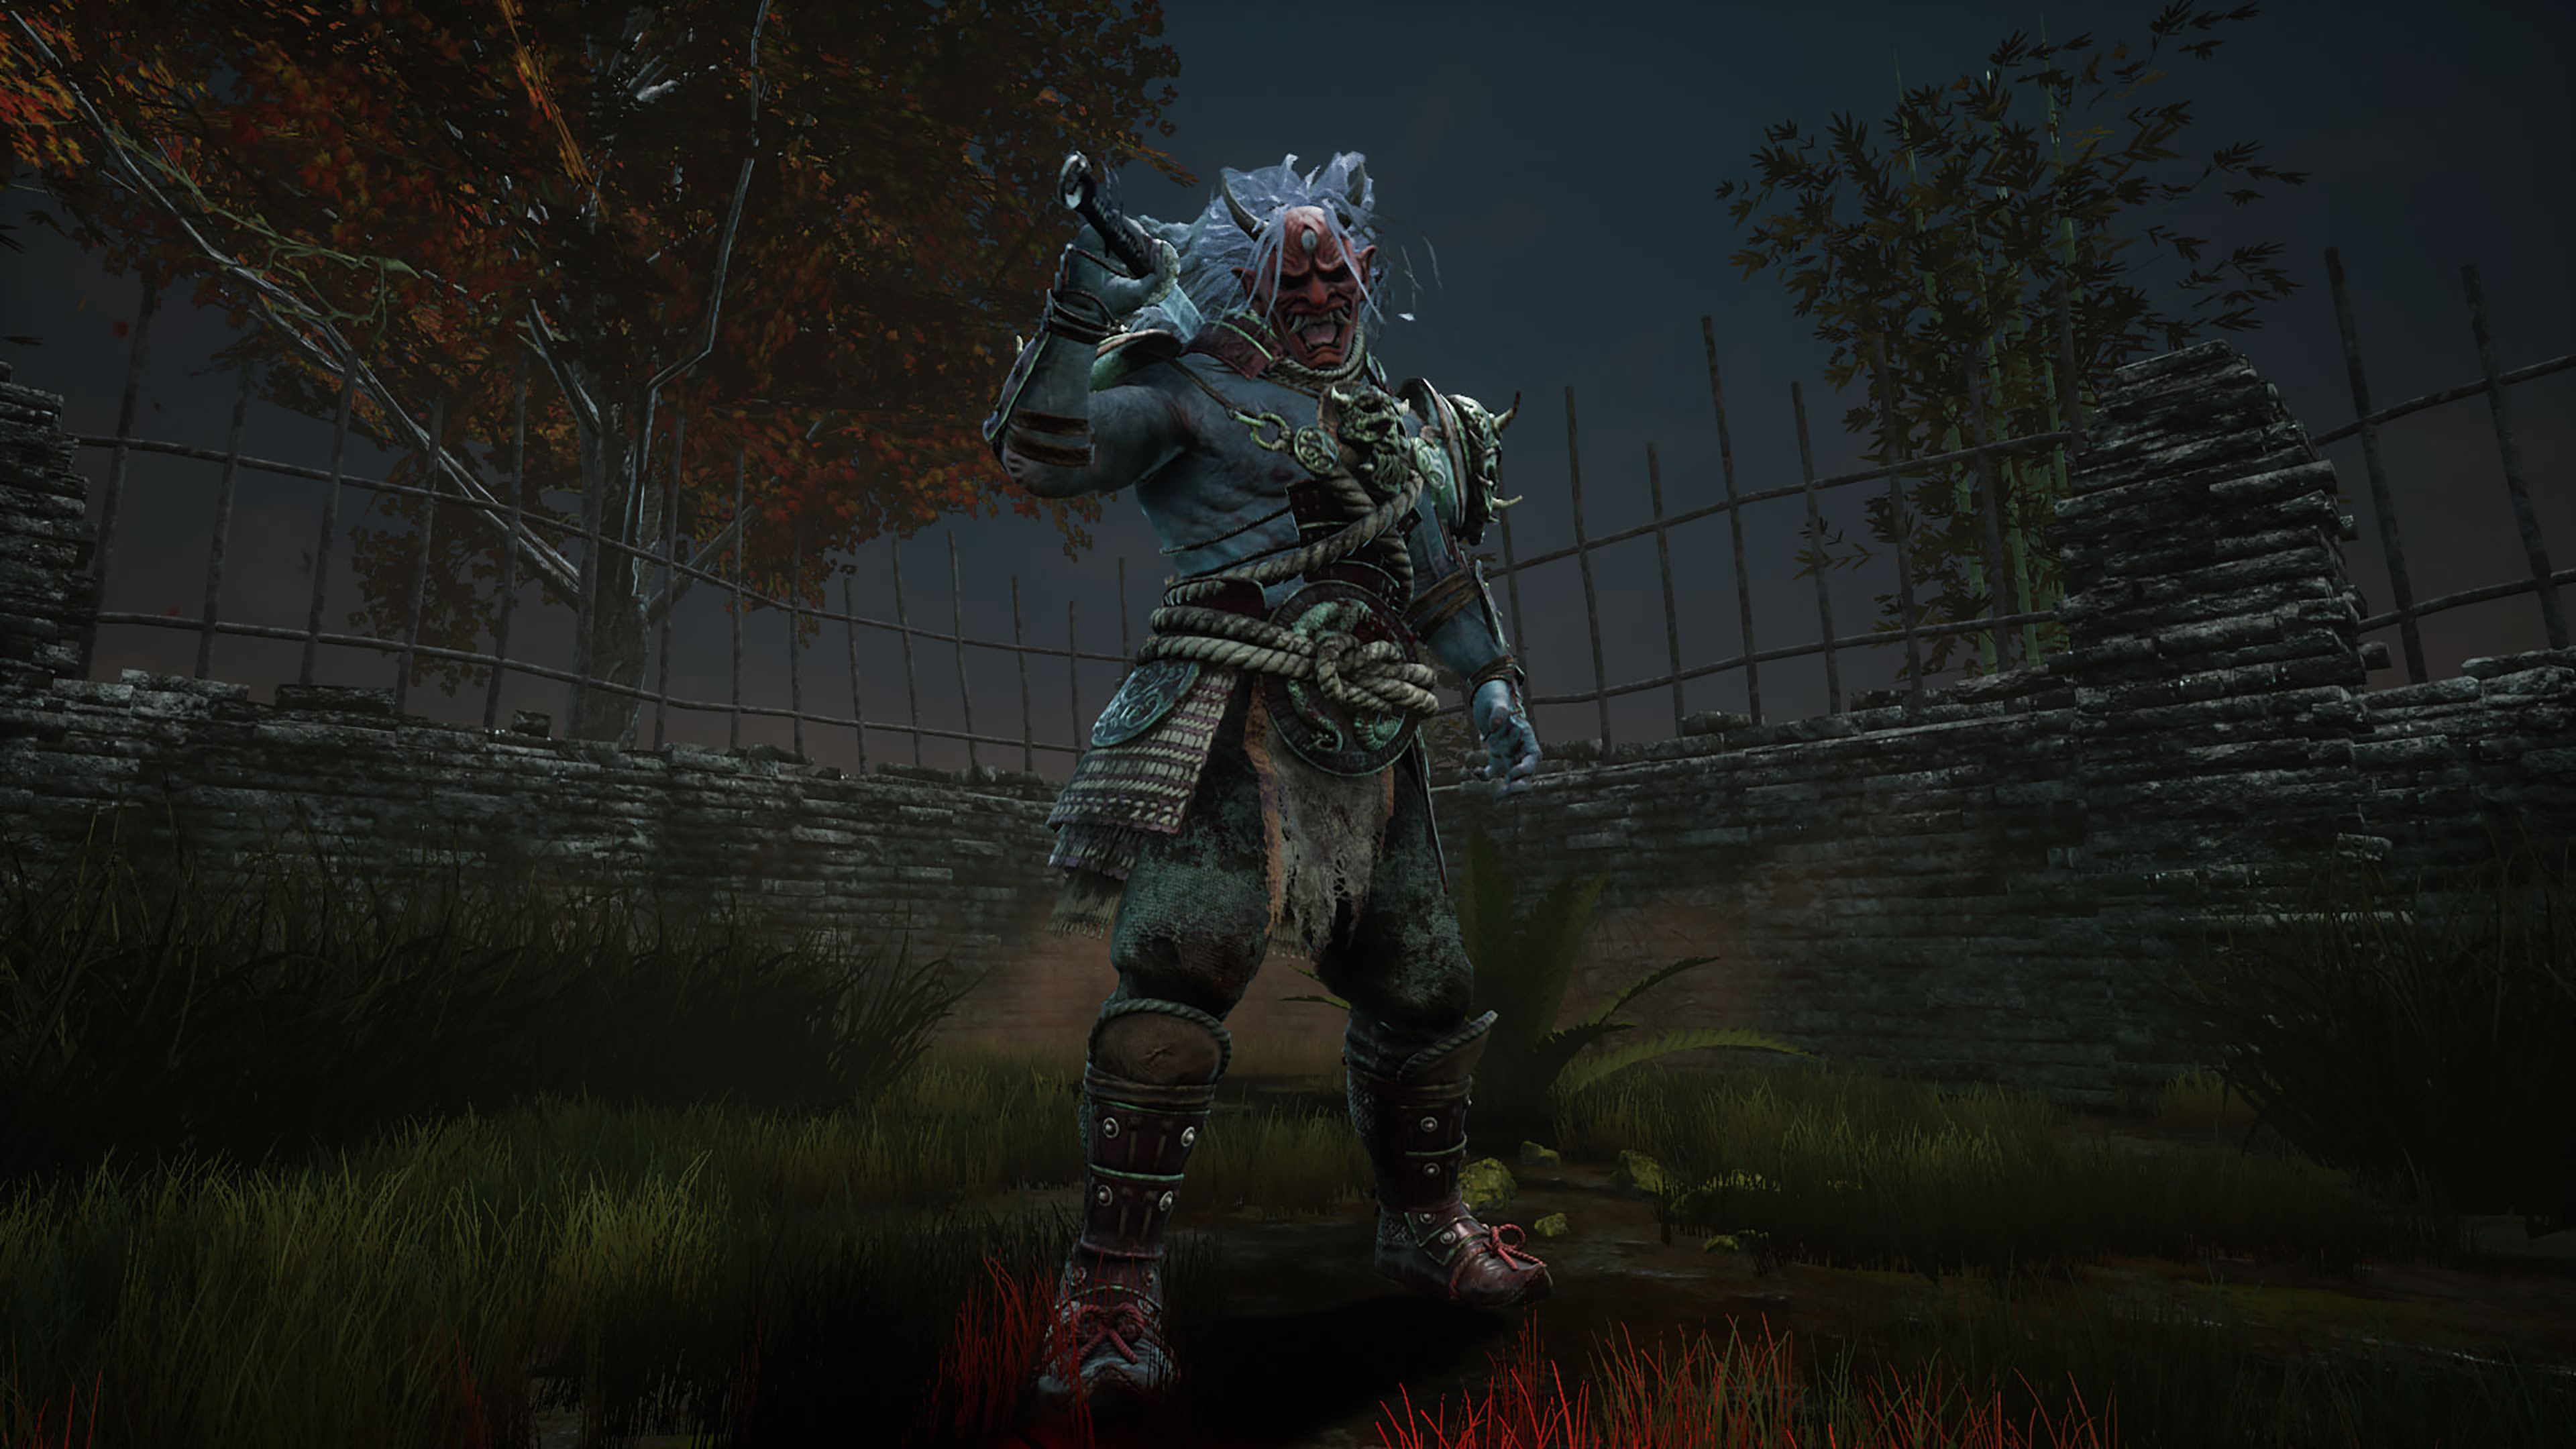 Скриншот №3 к Dead by Daylight ULTIMATE EDITION PS4 and PS5